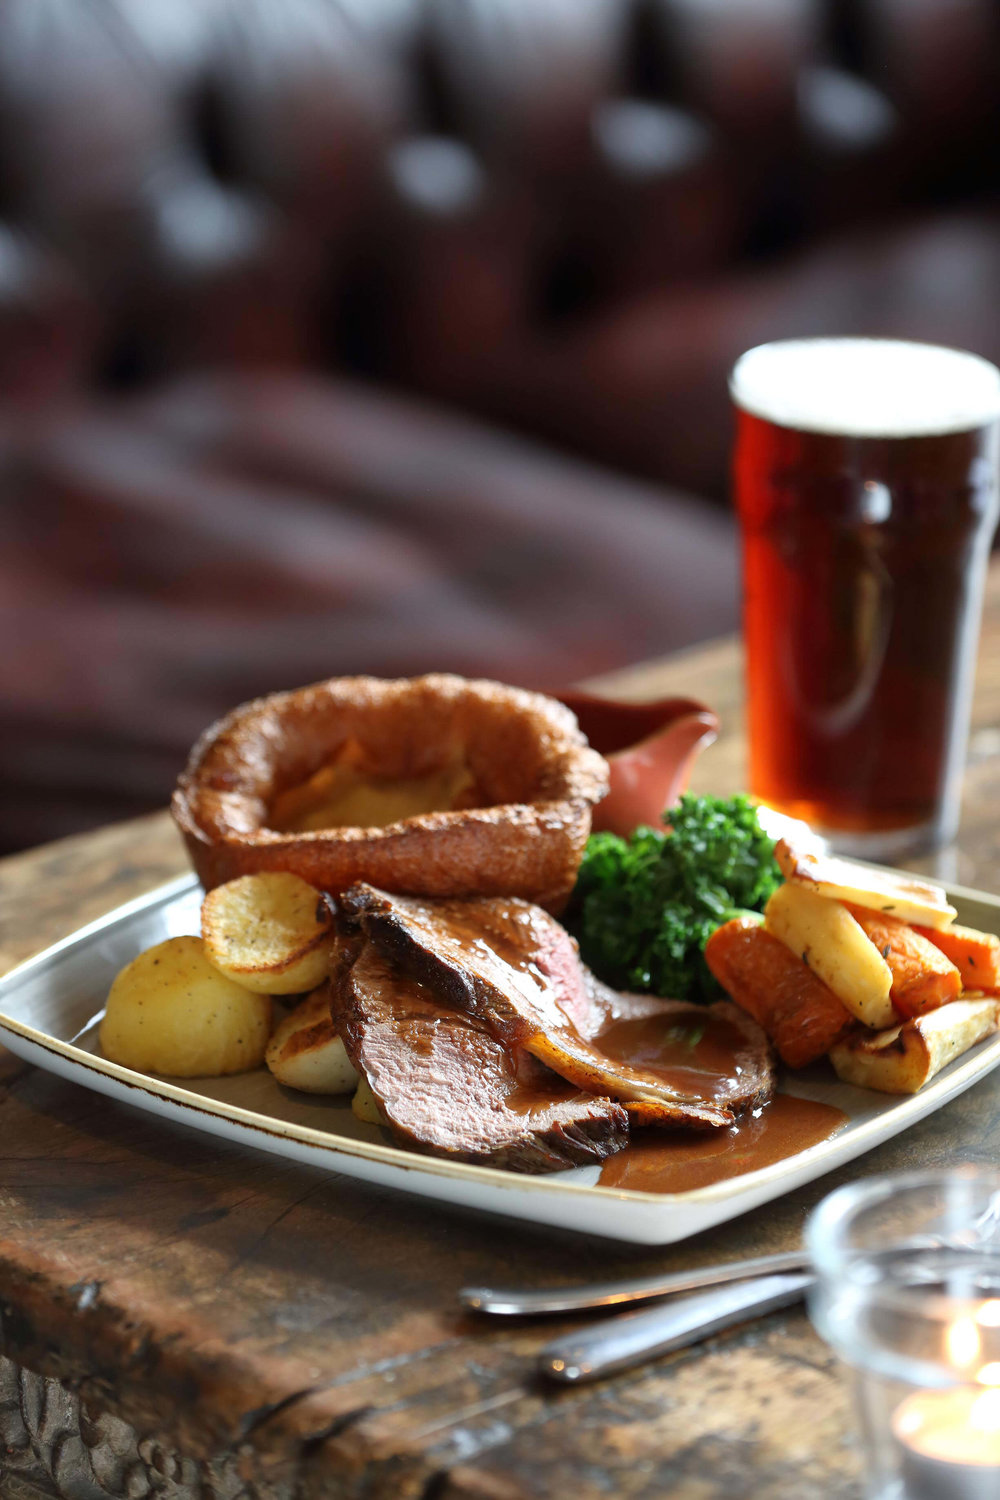 Sunday roast and pint of beer at The North Star pub, Ealing